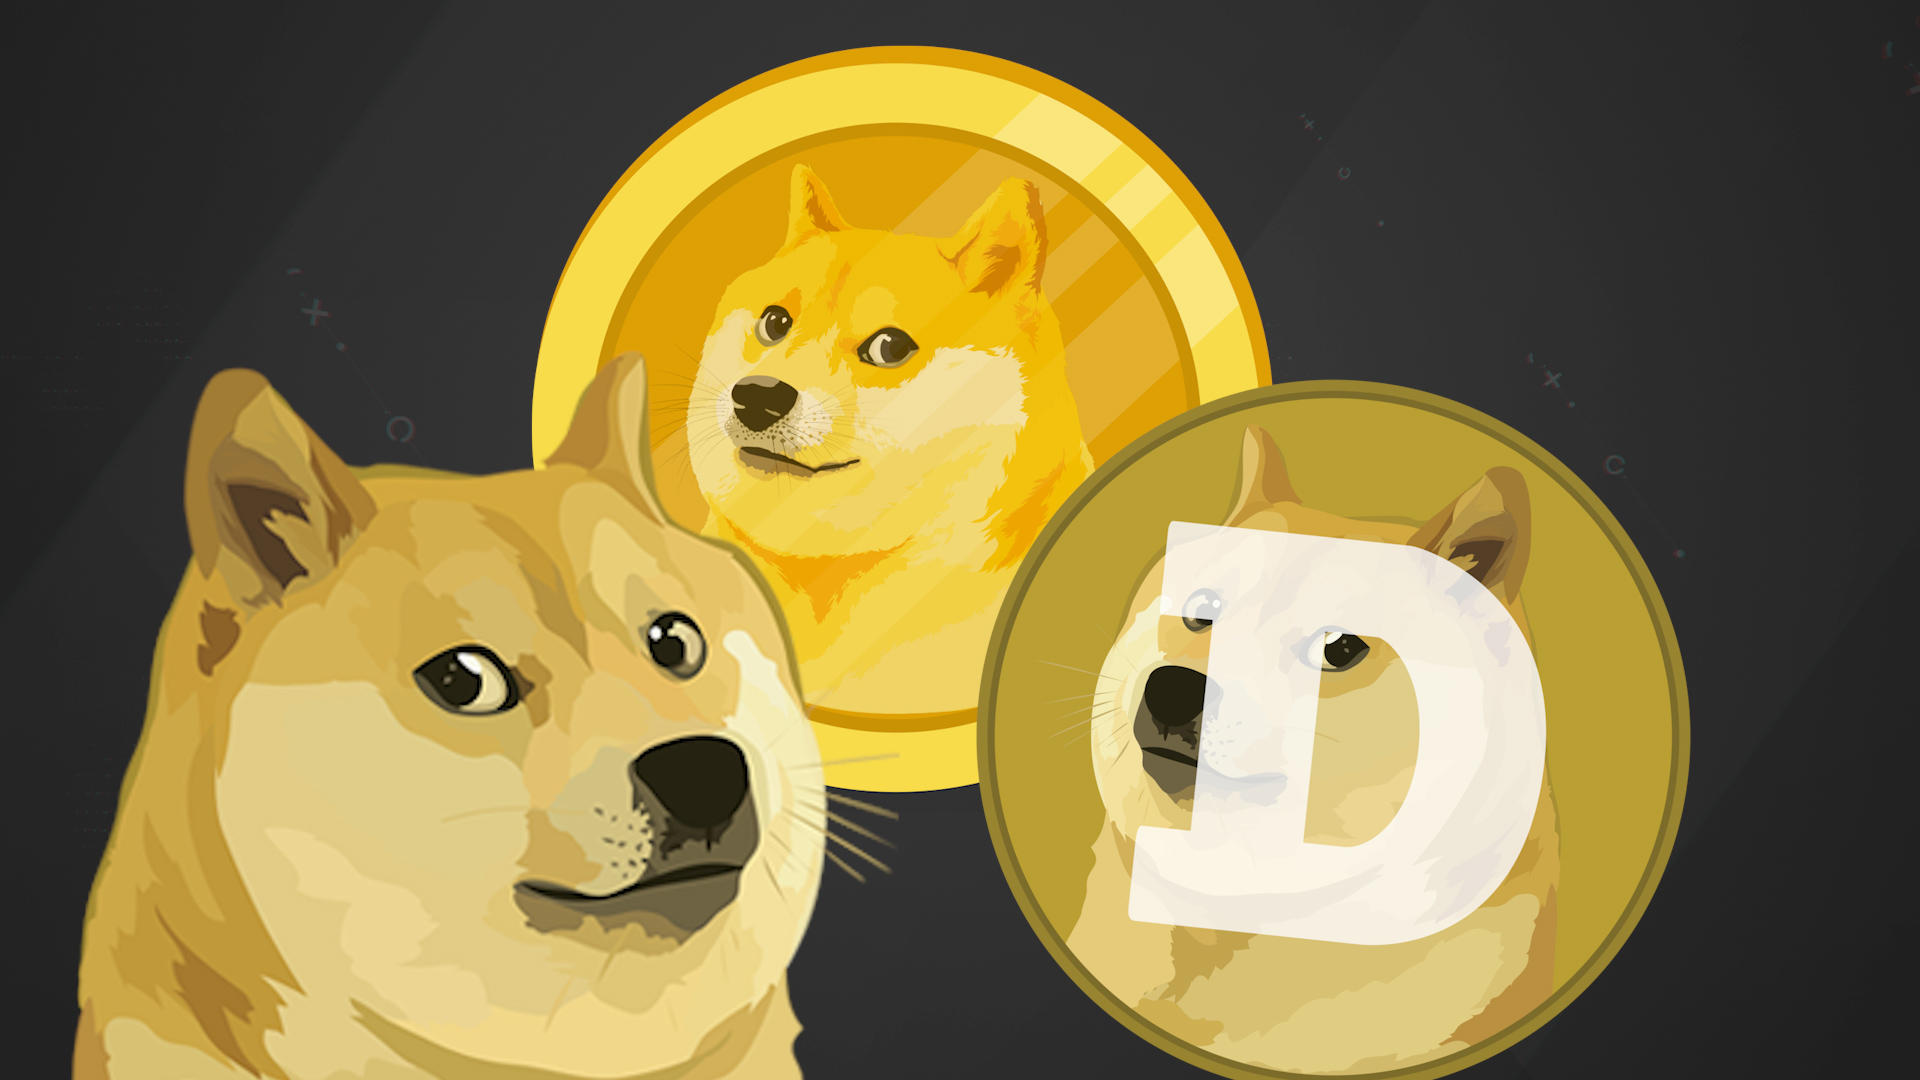 DogeCoin hits 10c: Why that has the internet excited thumbnail